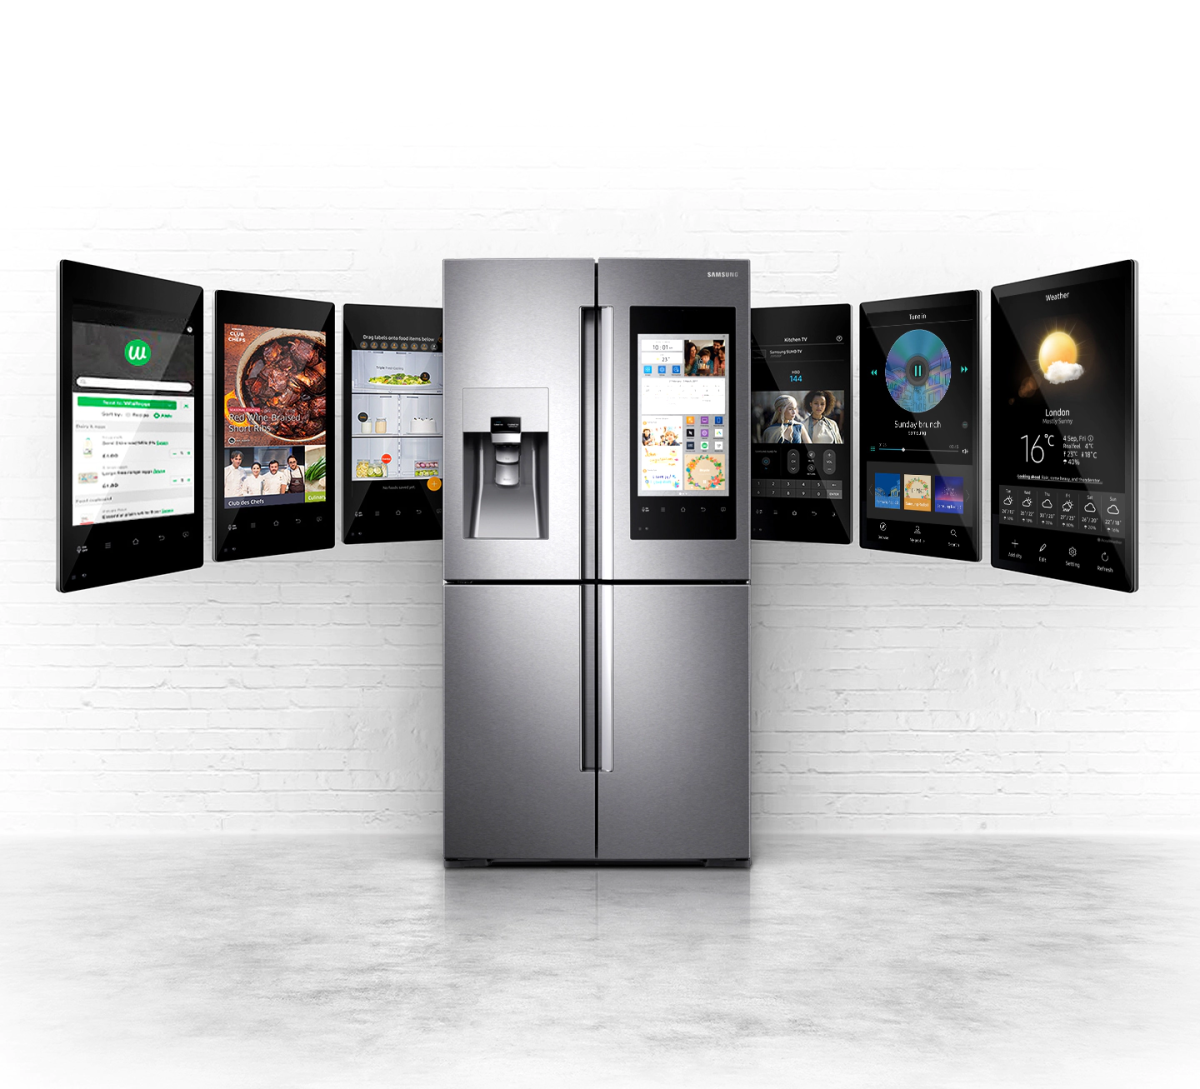 The fridge that does it all